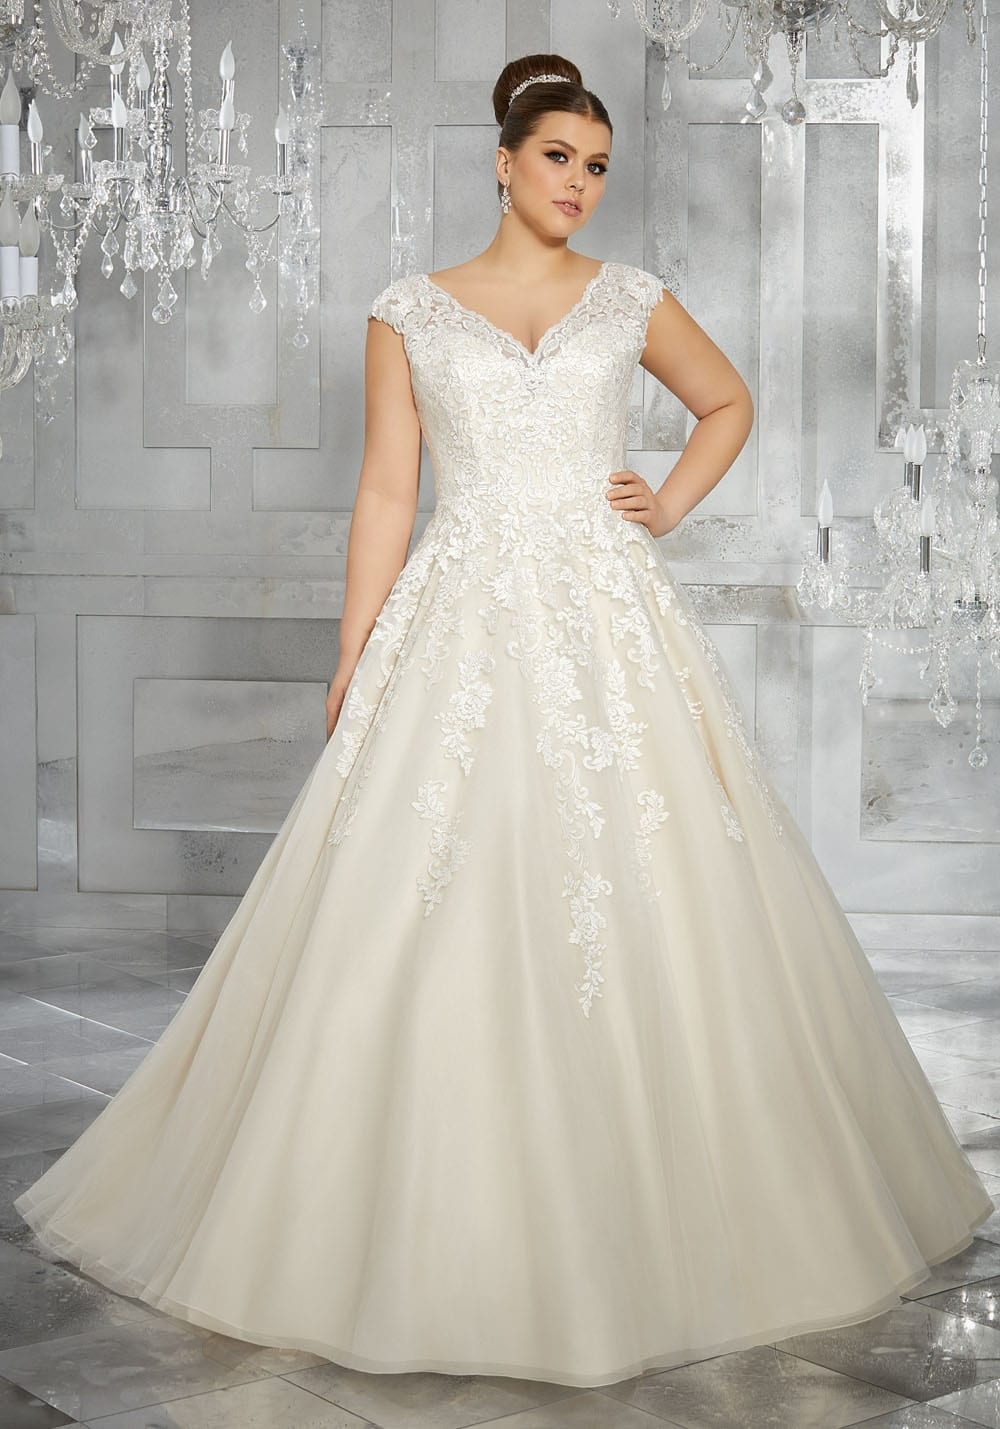 Wedding dresses sacramento diamond bridal gallery for Wedding dress shops in sacramento